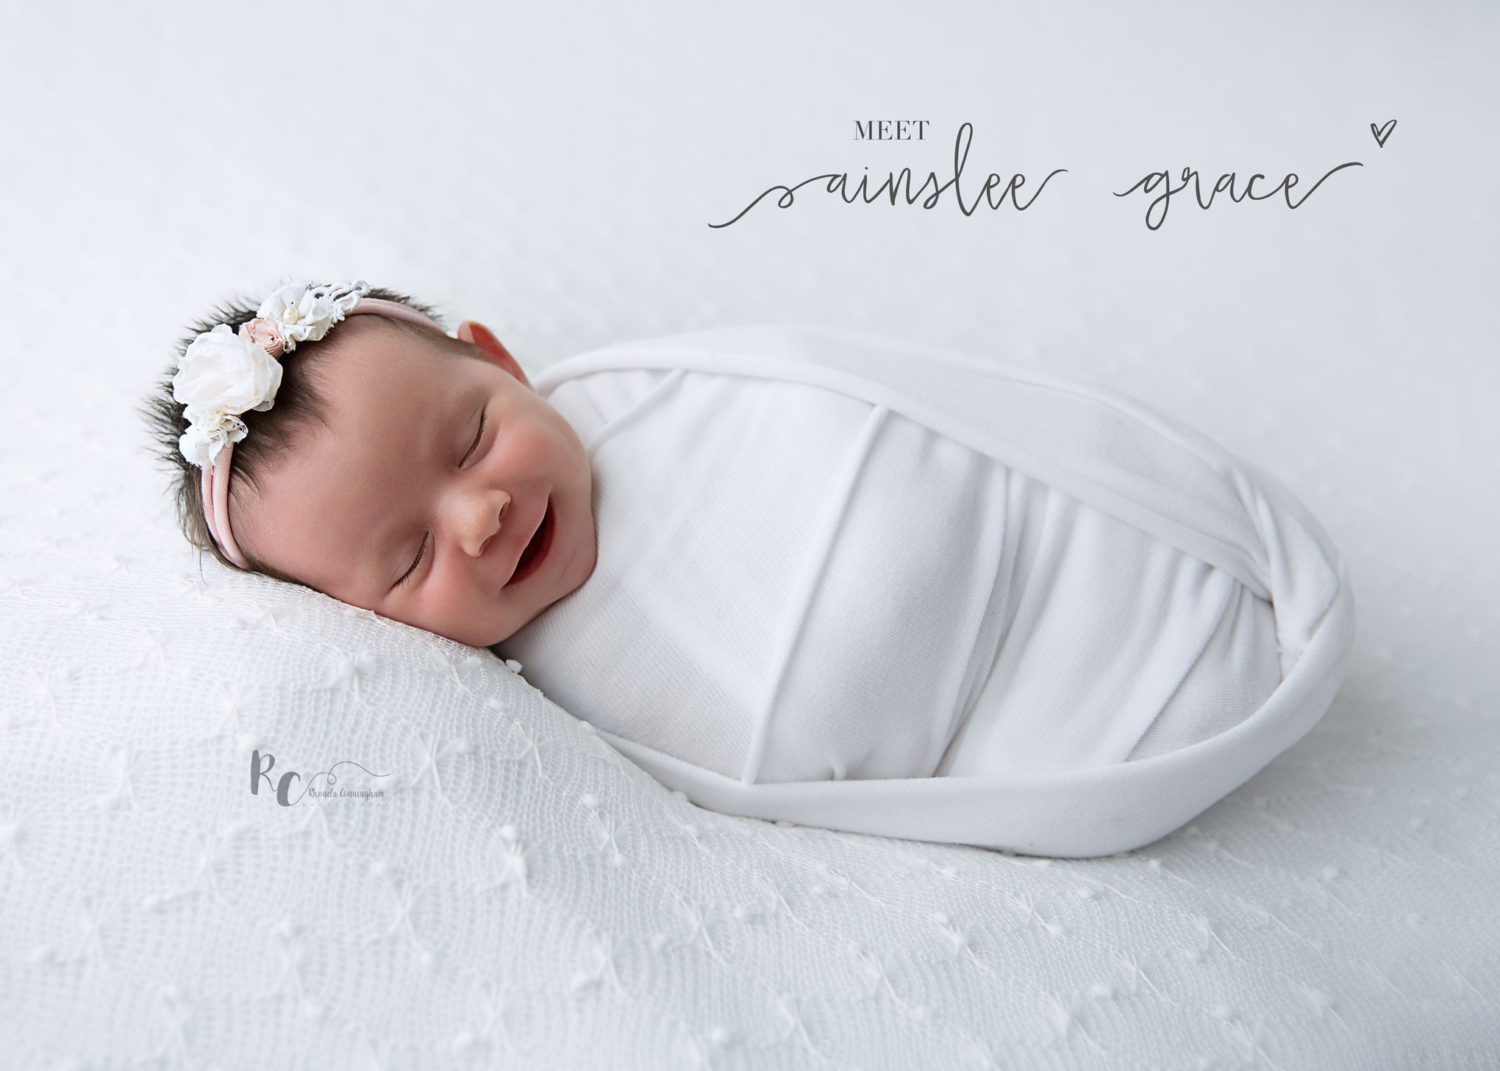 Newborn baby swaddled and smiling in an image captured by Rhonda Cunningham, Newborn Photographer in Lexington, KY